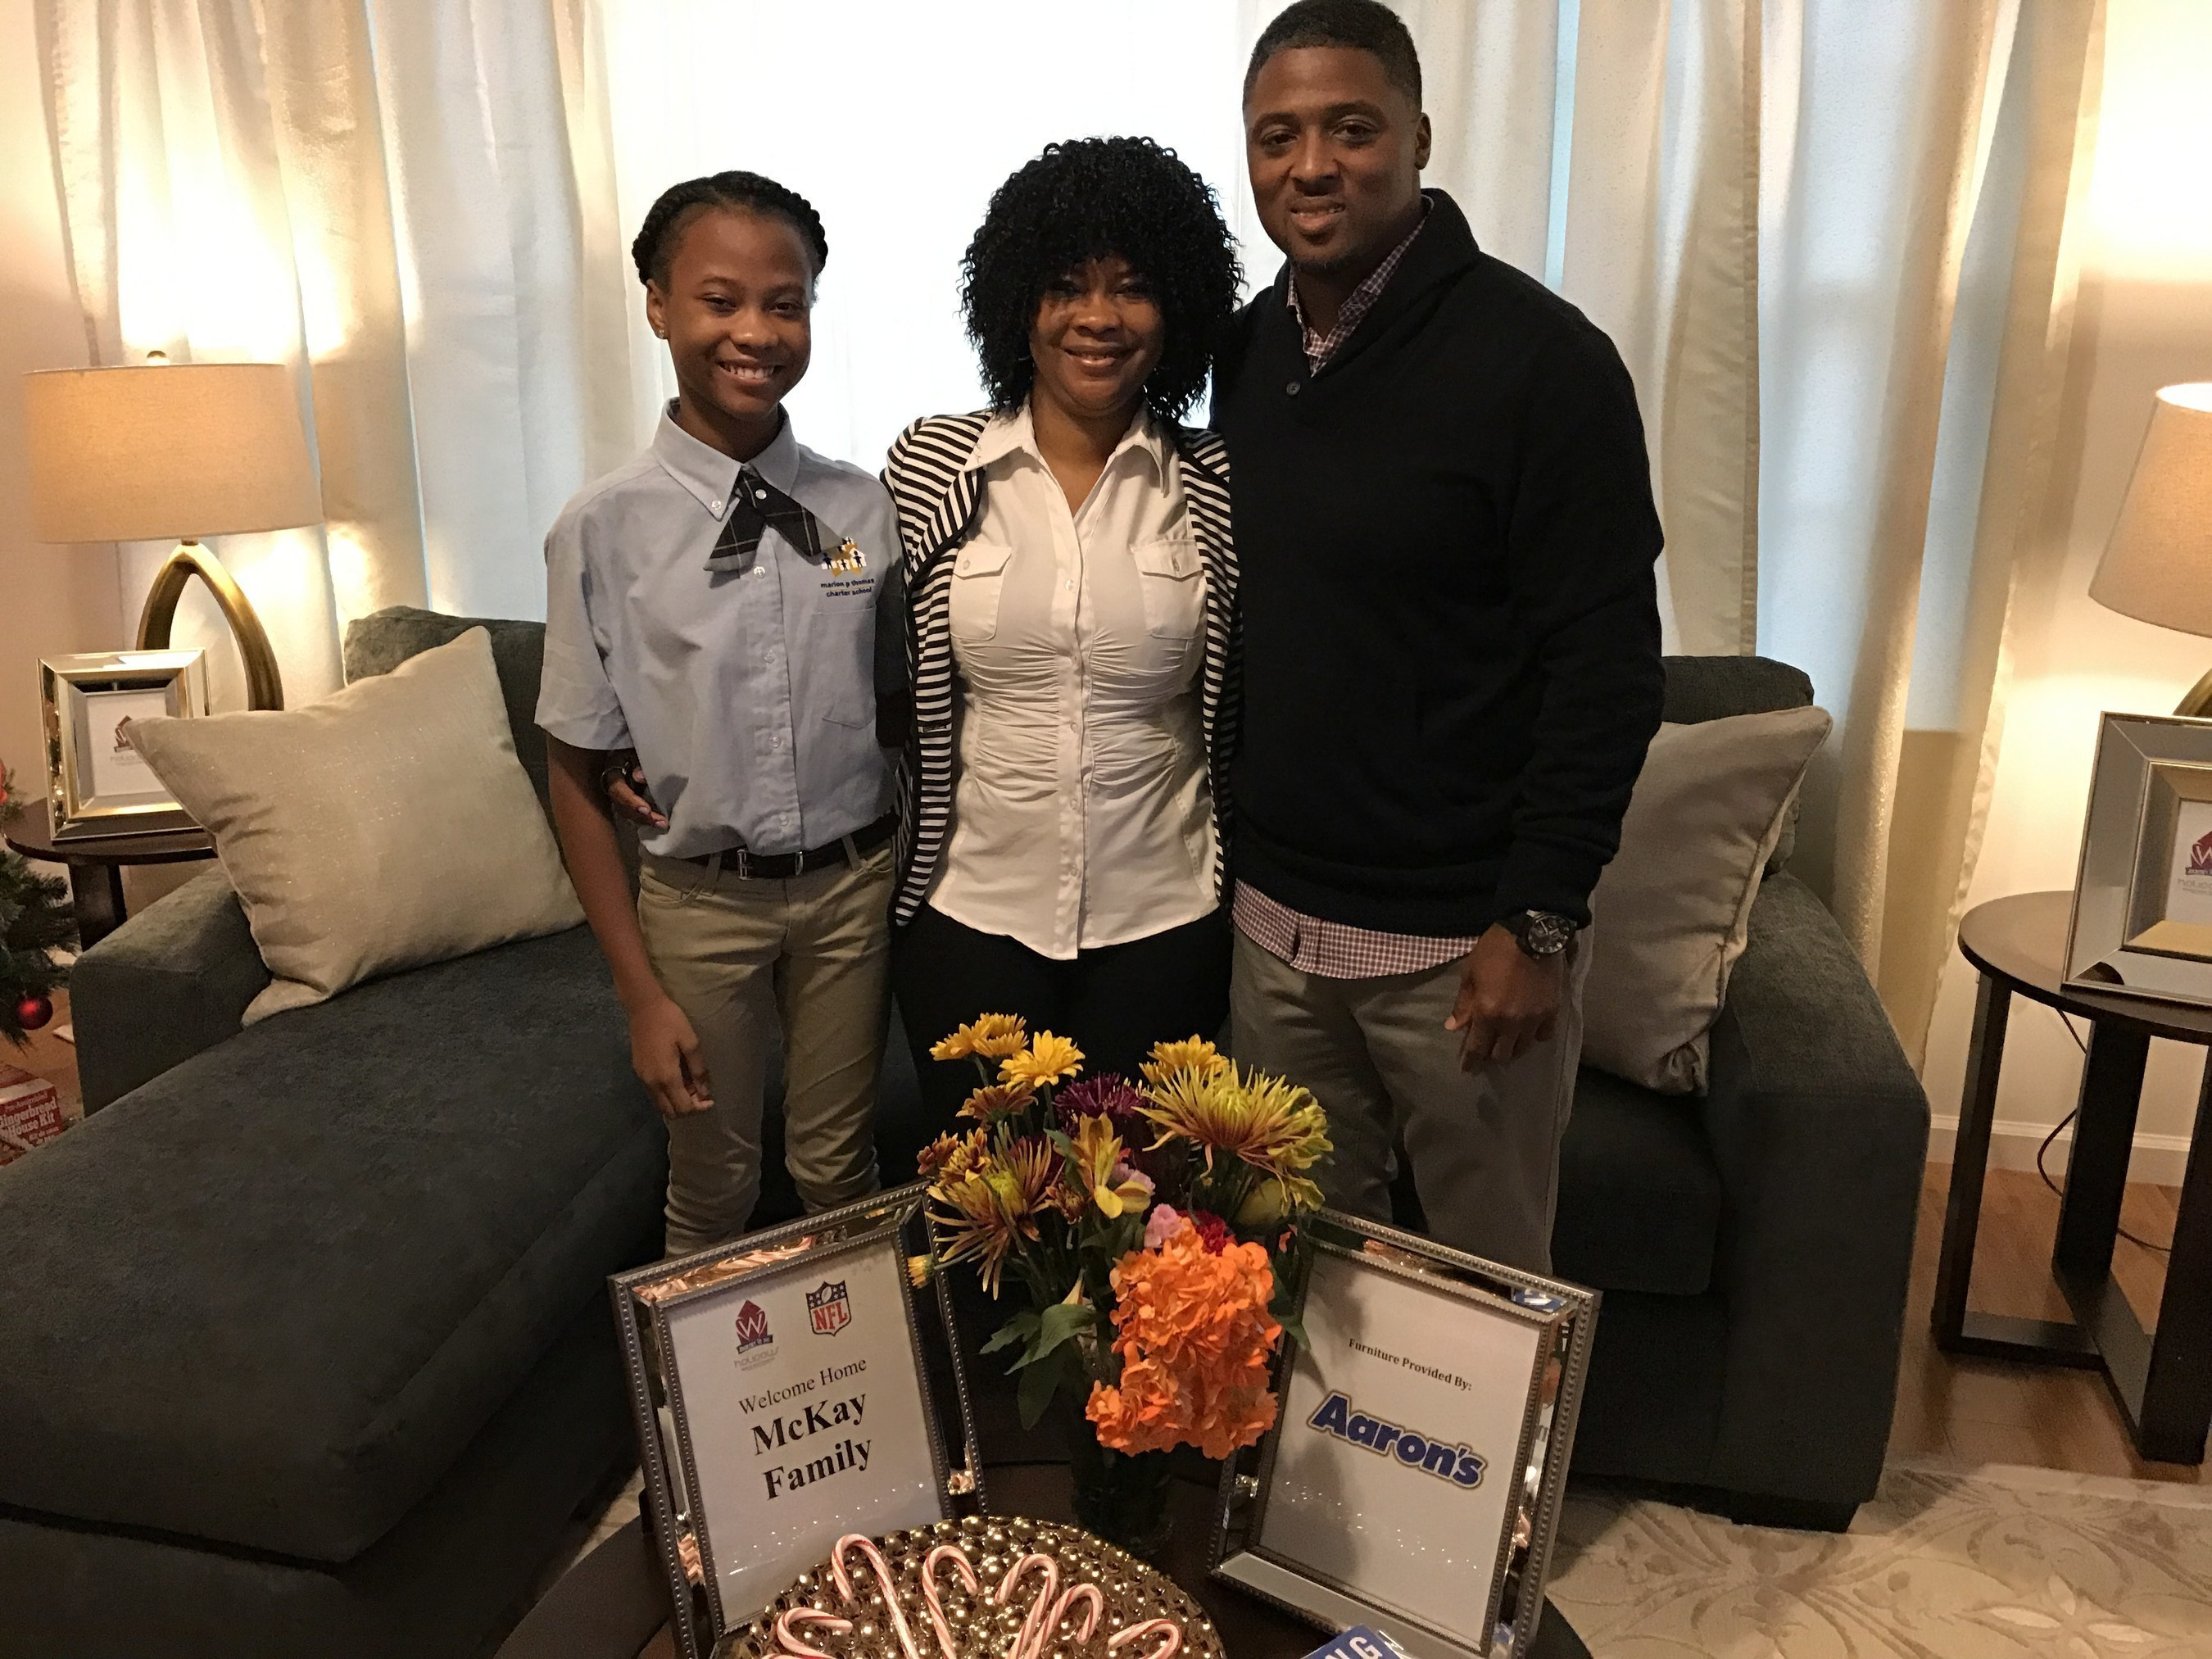 Newark resident Beatrice McKay, a Liberian refugee and mother of two, and former NFL star Warrick Dunn stand with McKay's daughter in the living room of her new fully furnished Habitat for Humanity home.  Aaron's surprised McKay and her family by providing furniture and electronics for her master bedroom, two children's bedrooms, living room and dining room during the 150th Homes for the Holidays (HFTH) home presentation sponsored by Warrick Dunn Charities and Habitat for Humanity Newark.